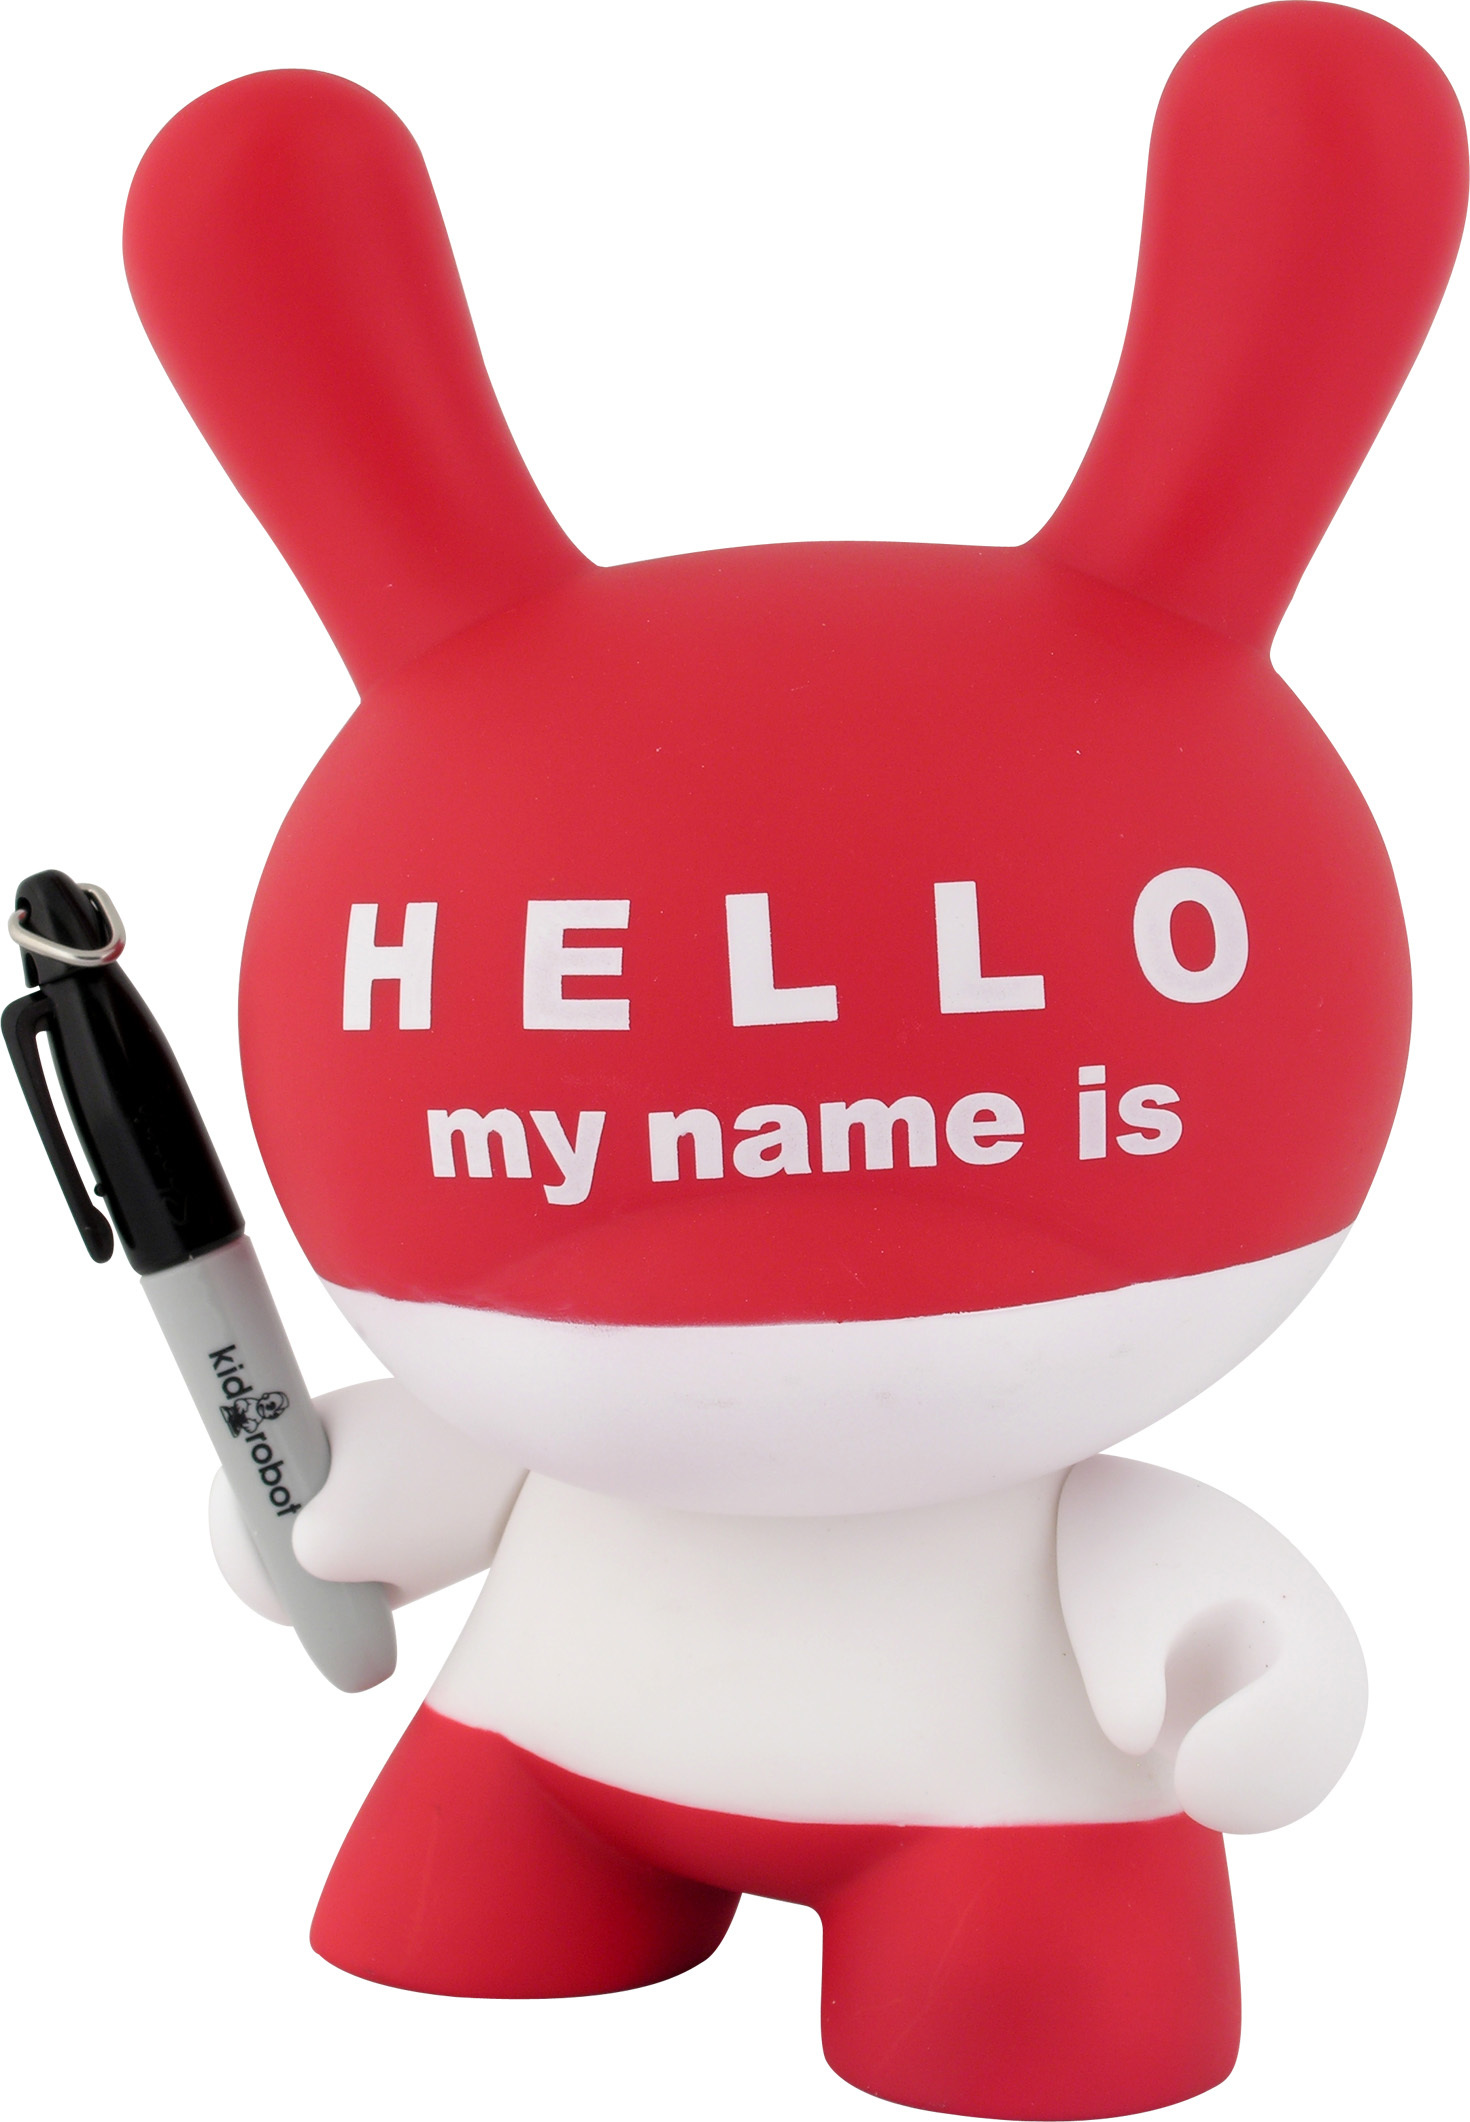 "Paul Budnitz, Tristan Eaton, and Huck Gee. ""Hello My Name Is"" Dunny. 2006. Vinyl, 8 × 5 × 5 1/4″ (20.3 × 12.7 × 13.3 cm). The Museum of Modern Art, New York. Gift of the manufacturer. © 2007 Kidrobot"